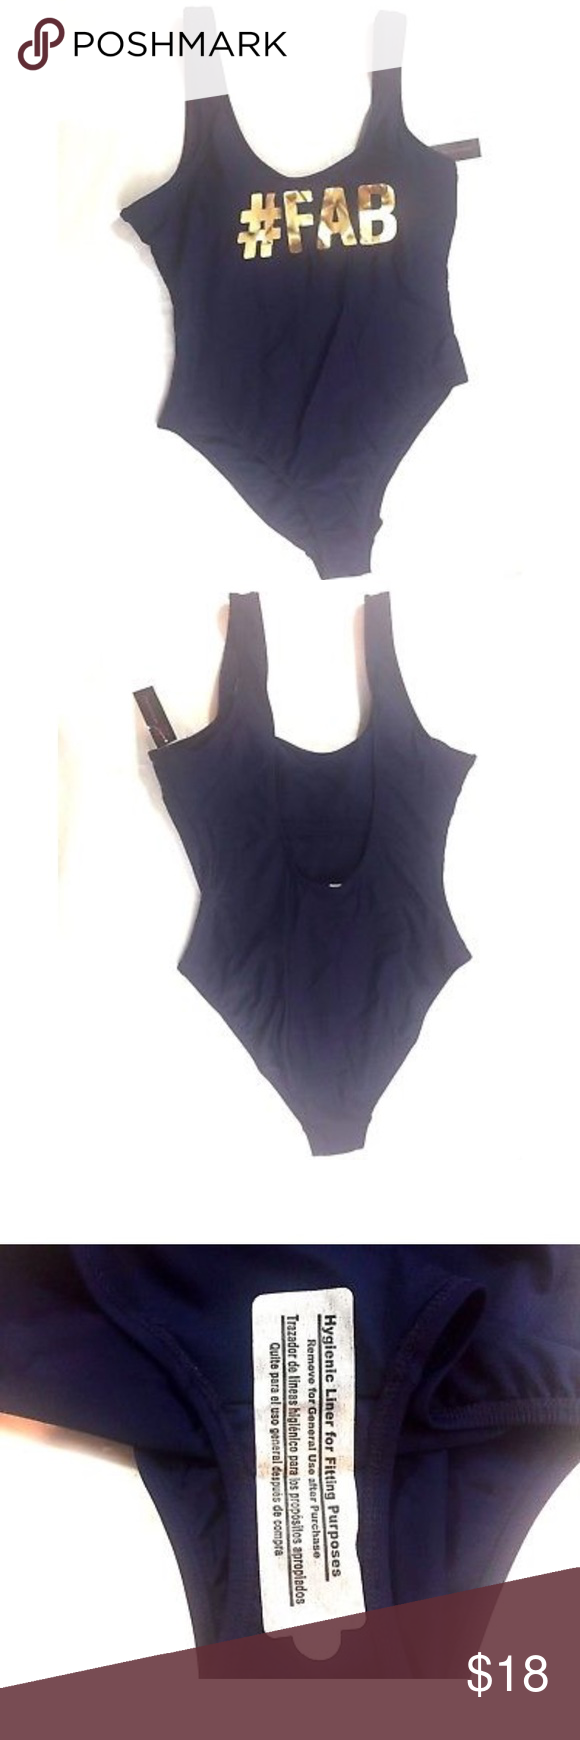 574c177ce25 #FAB Navy Gold One Piece Swimsuit Large 11-13 NEW NWT Juniors No Boundaries  Navy #FAB Swimsuit Bathing Suit 1 piece Large 11/13 Swim One Pieces